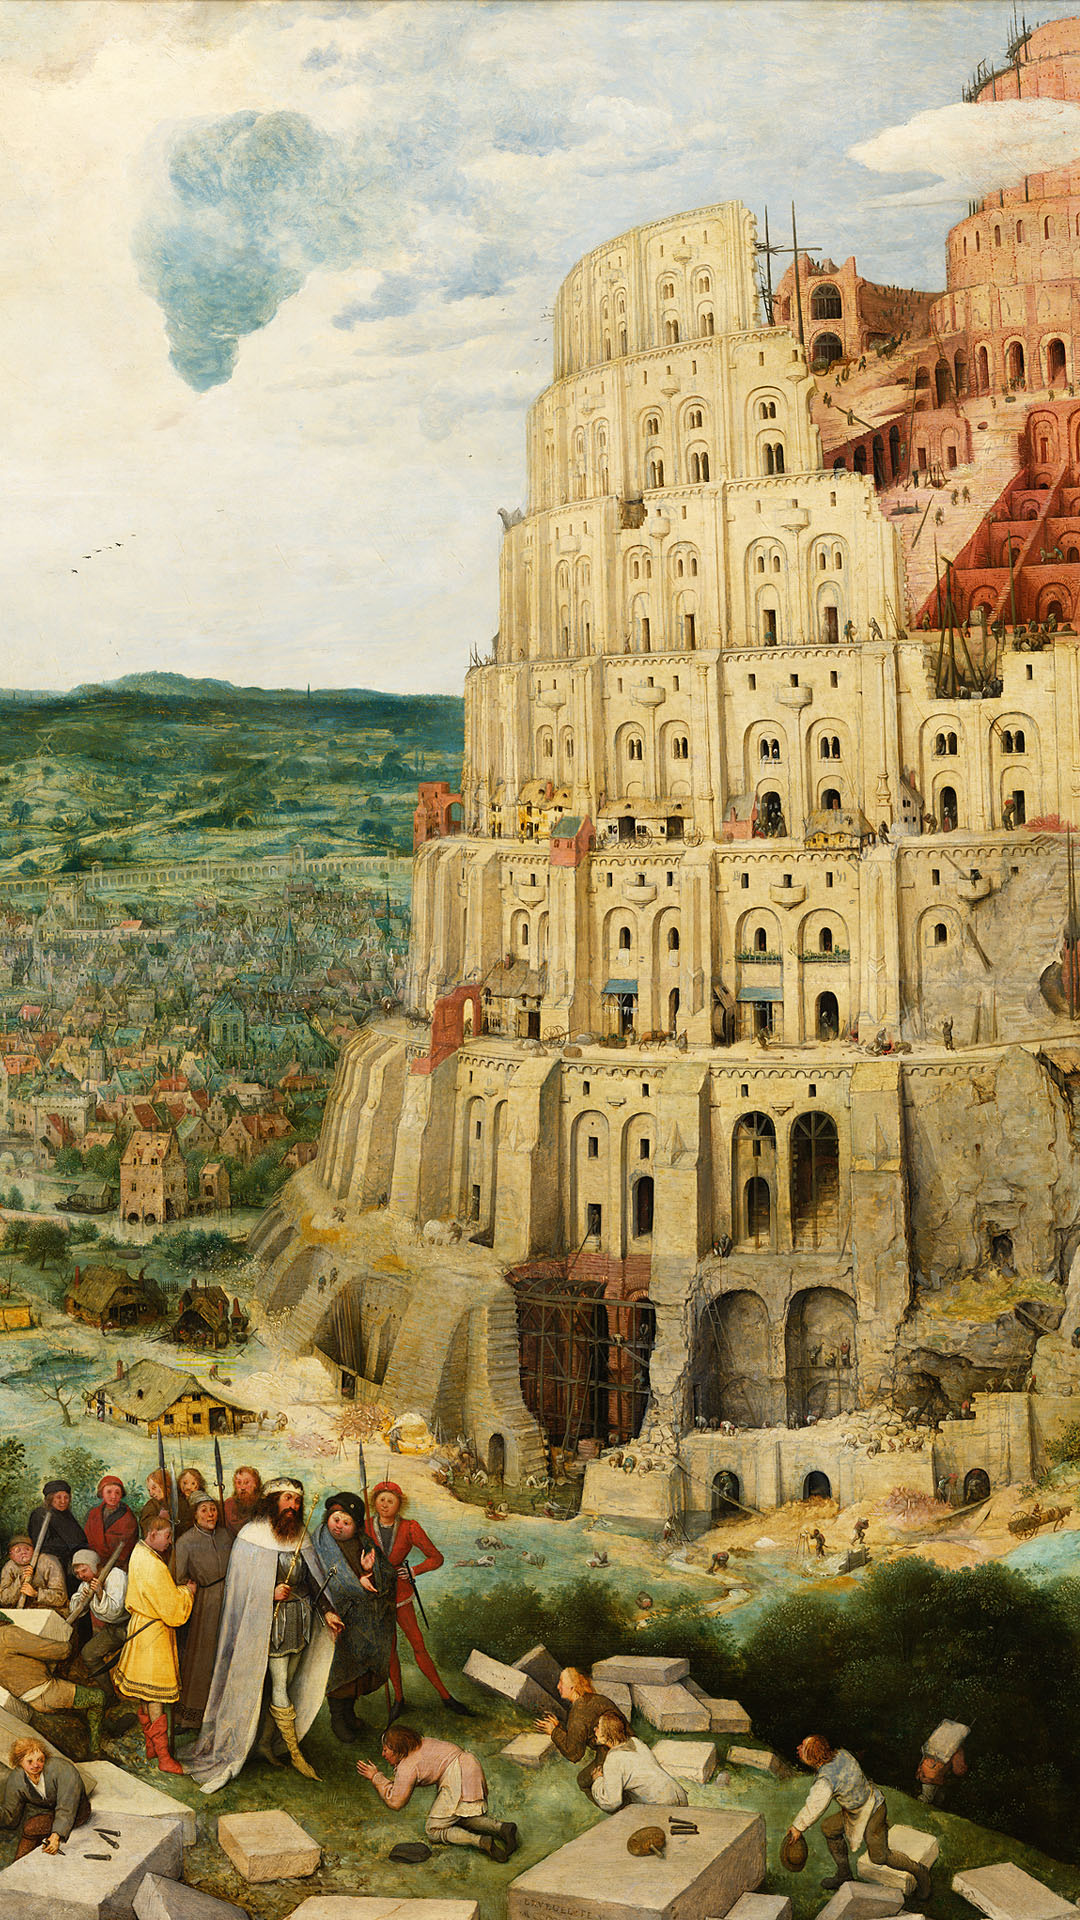 Pieter Bruegel - The Tower of Babel 1080x1920